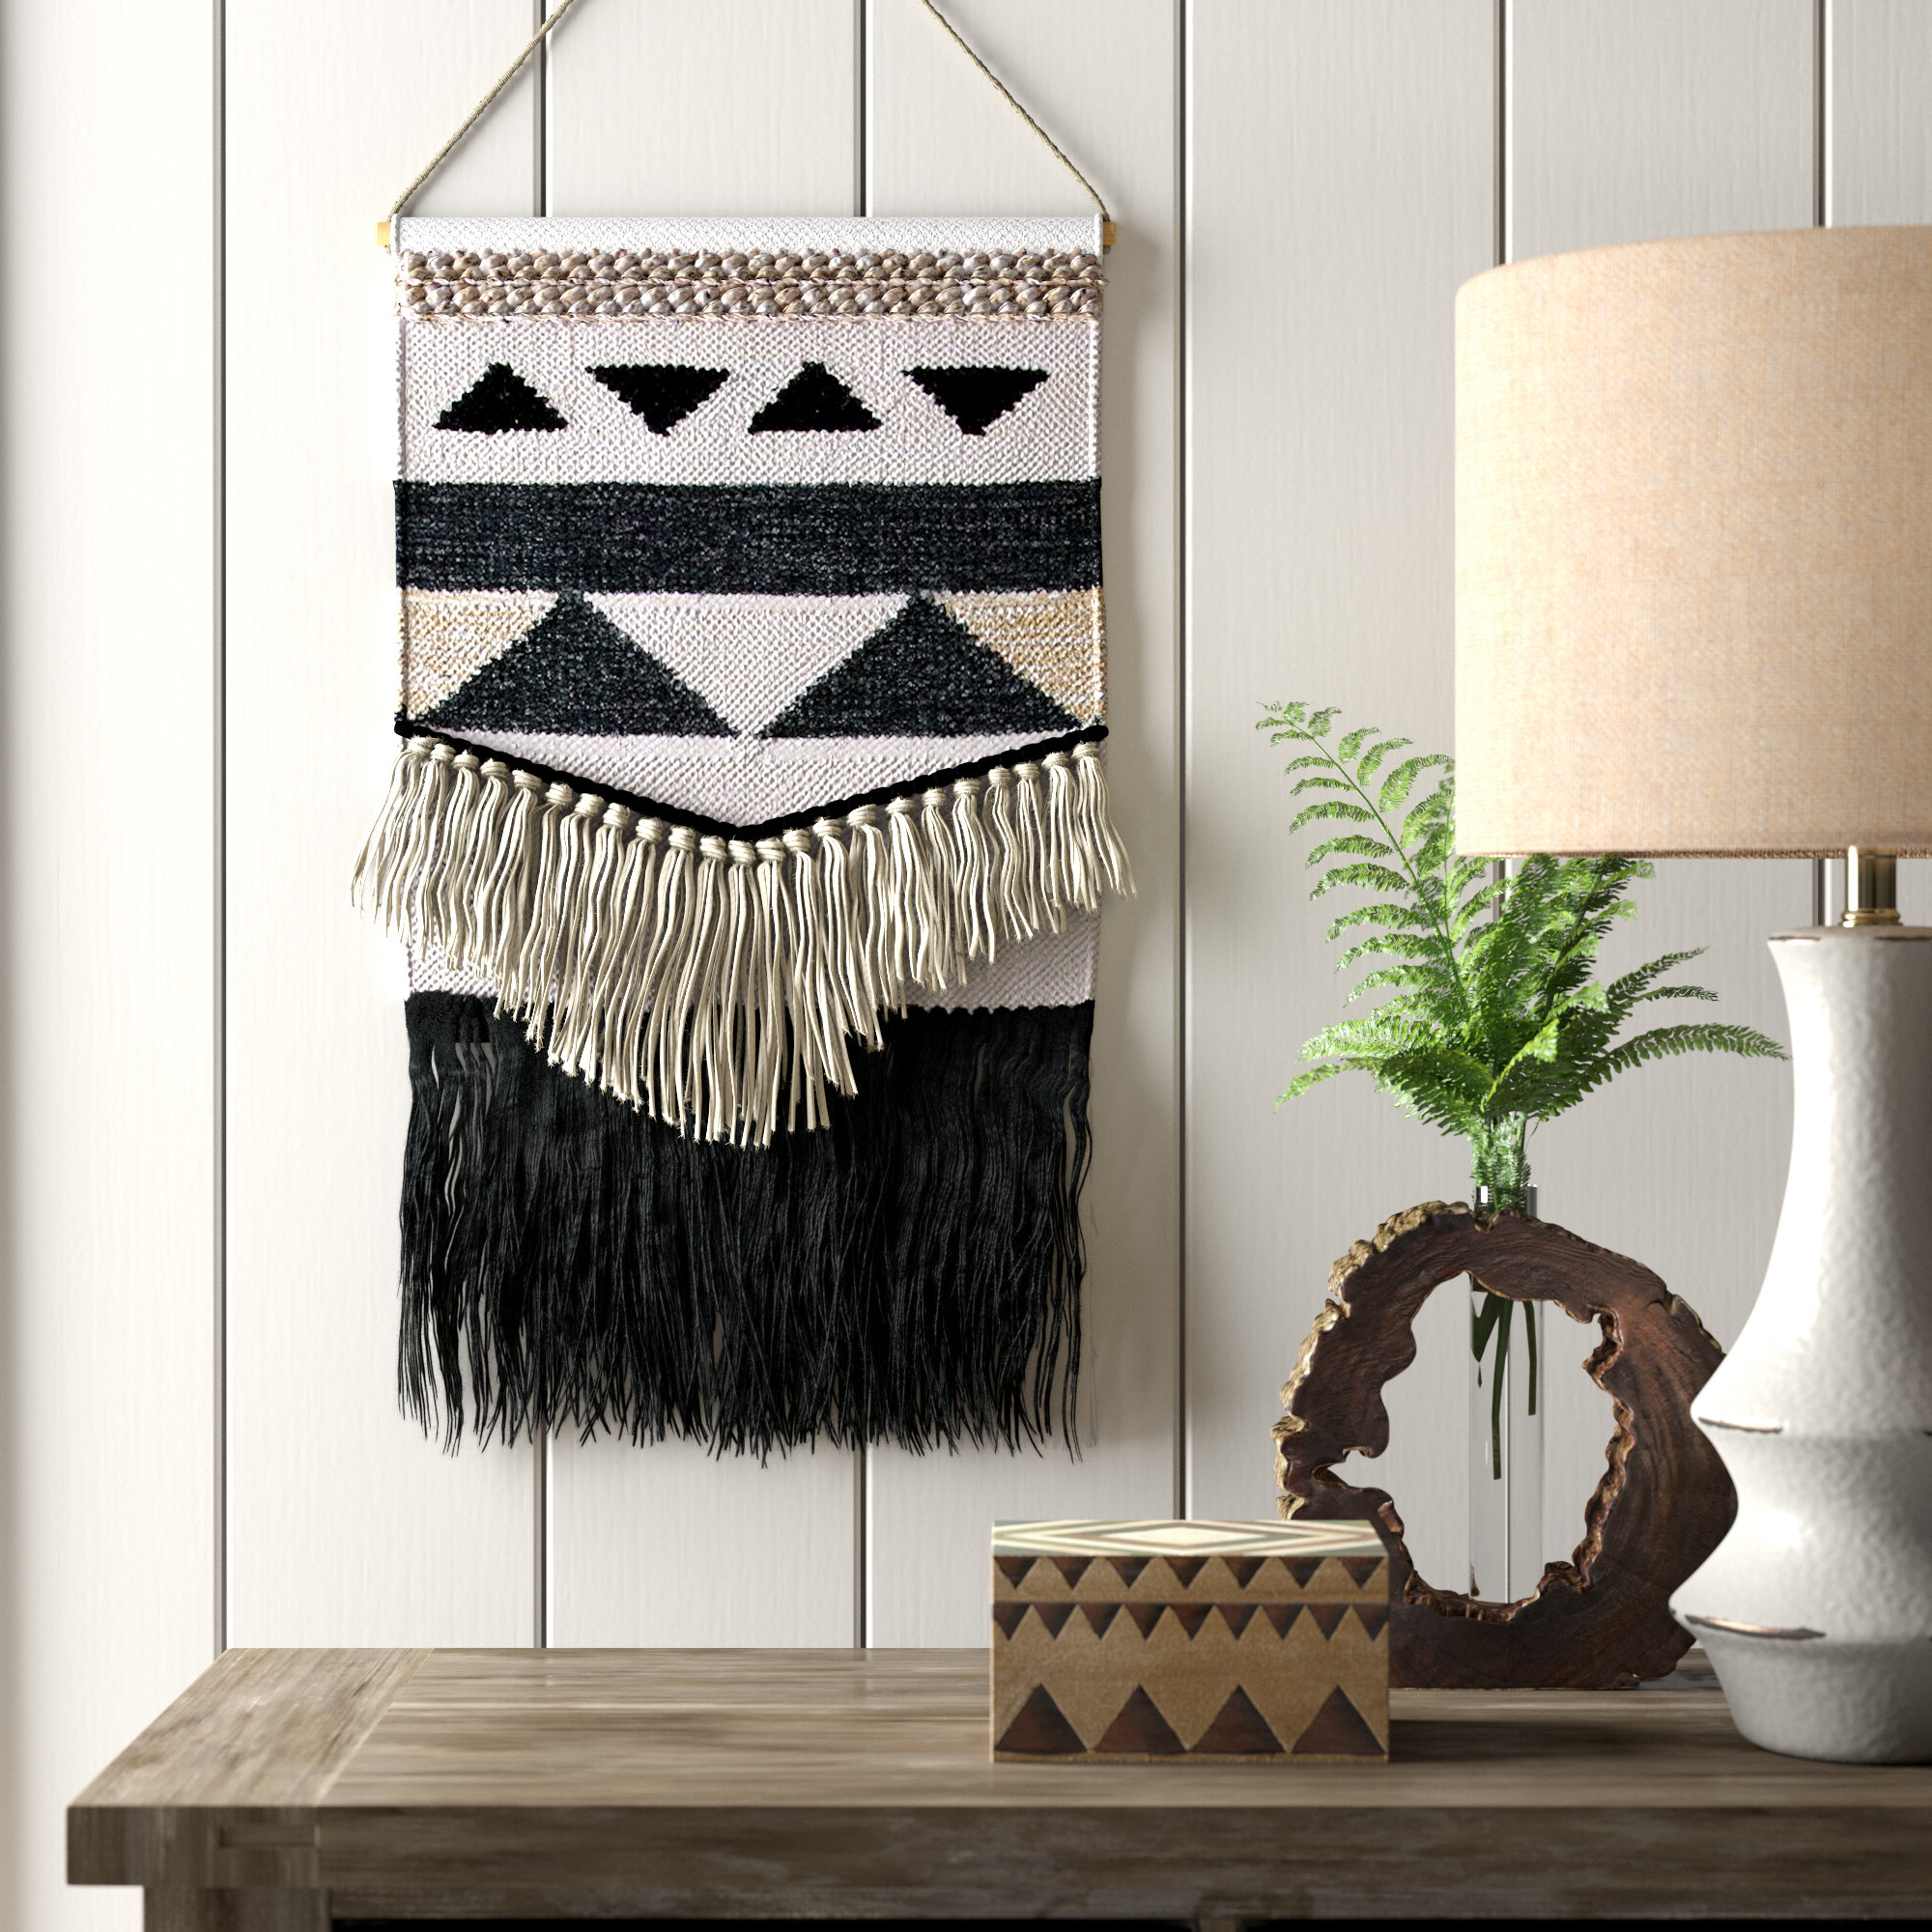 Blended Fabric Wall Hanging With Hanging Accessories Included In Newest Blended Fabric Wall Hangings With Hanging Accessories Included (View 5 of 20)